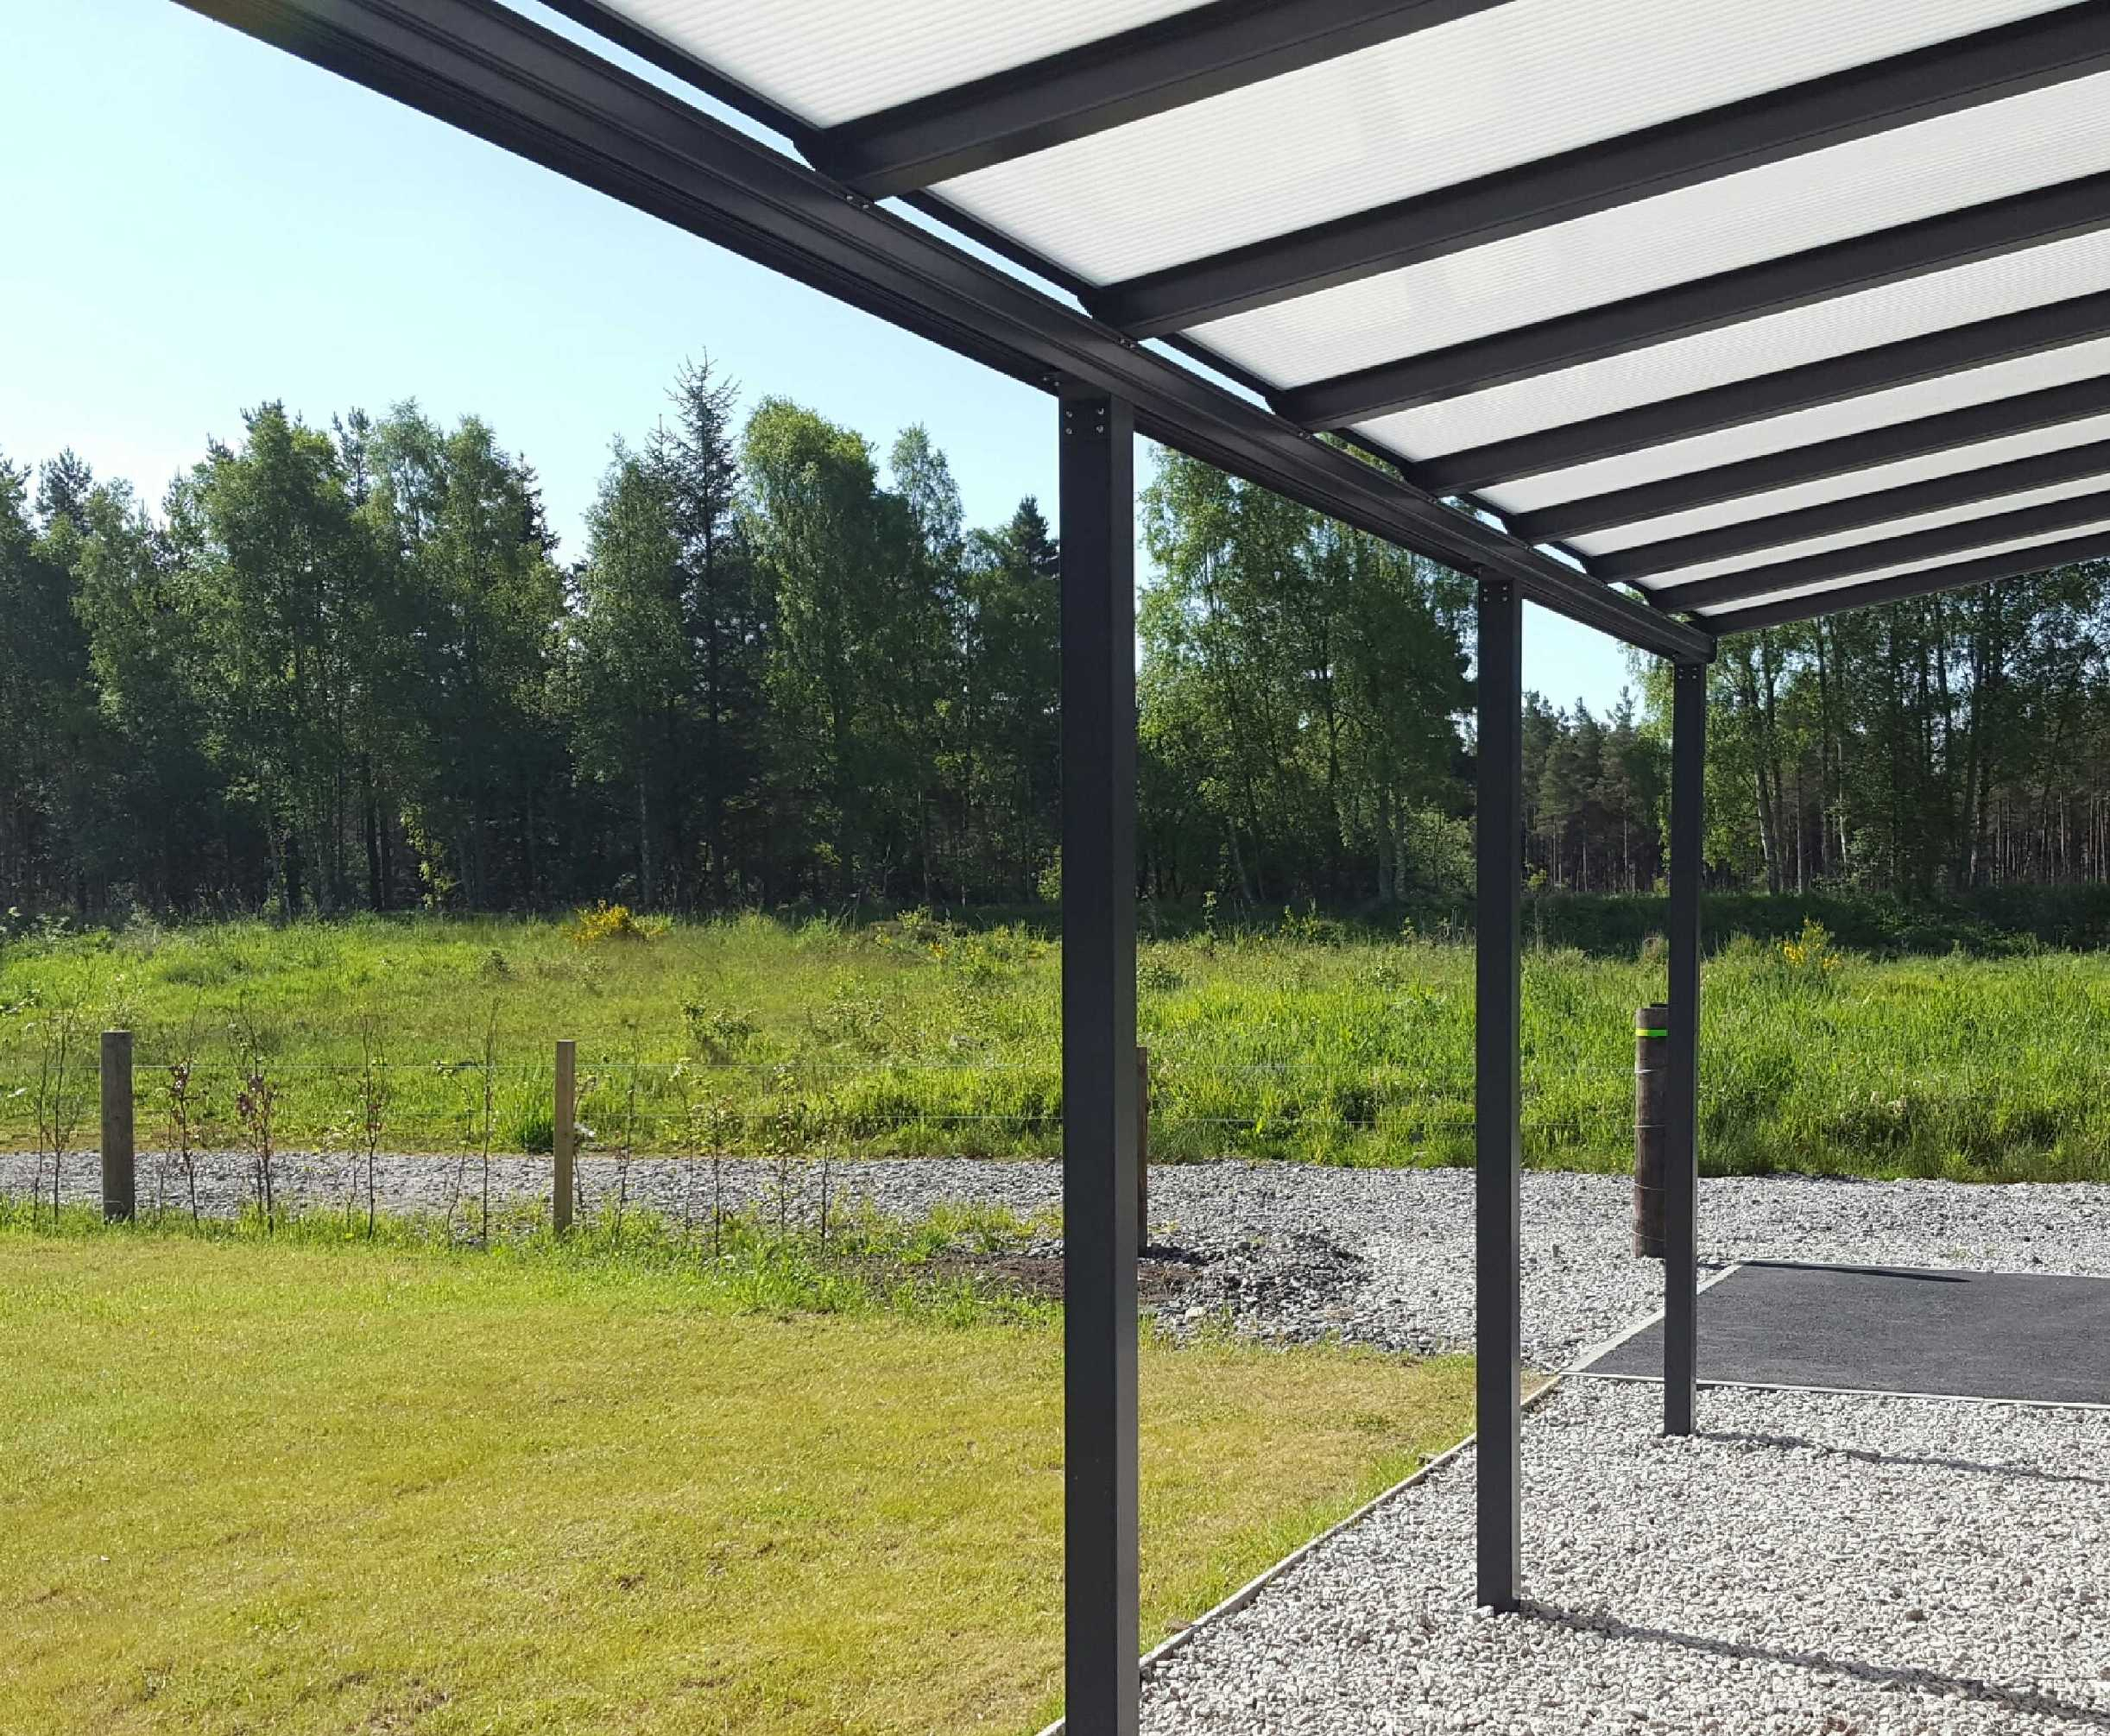 Omega Smart Lean-To Canopy, Anthracite Grey, 16mm Polycarbonate Glazing - 4.2m (W) x 2.5m (P), (3) Supporting Posts